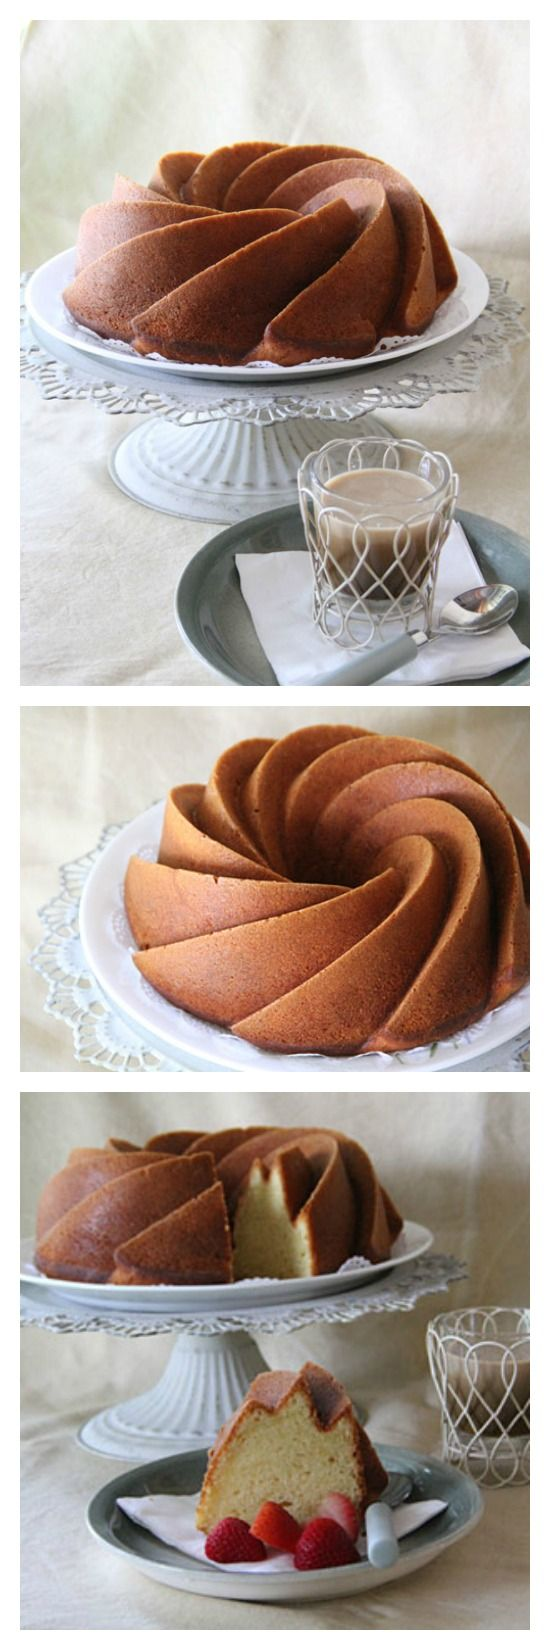 Lemon Cream Cake Recipe, sweet, heavenly, rich, and lemony. This beautiful cake makes a perfect centerpiece for any parties! http://rasamalaysia.com